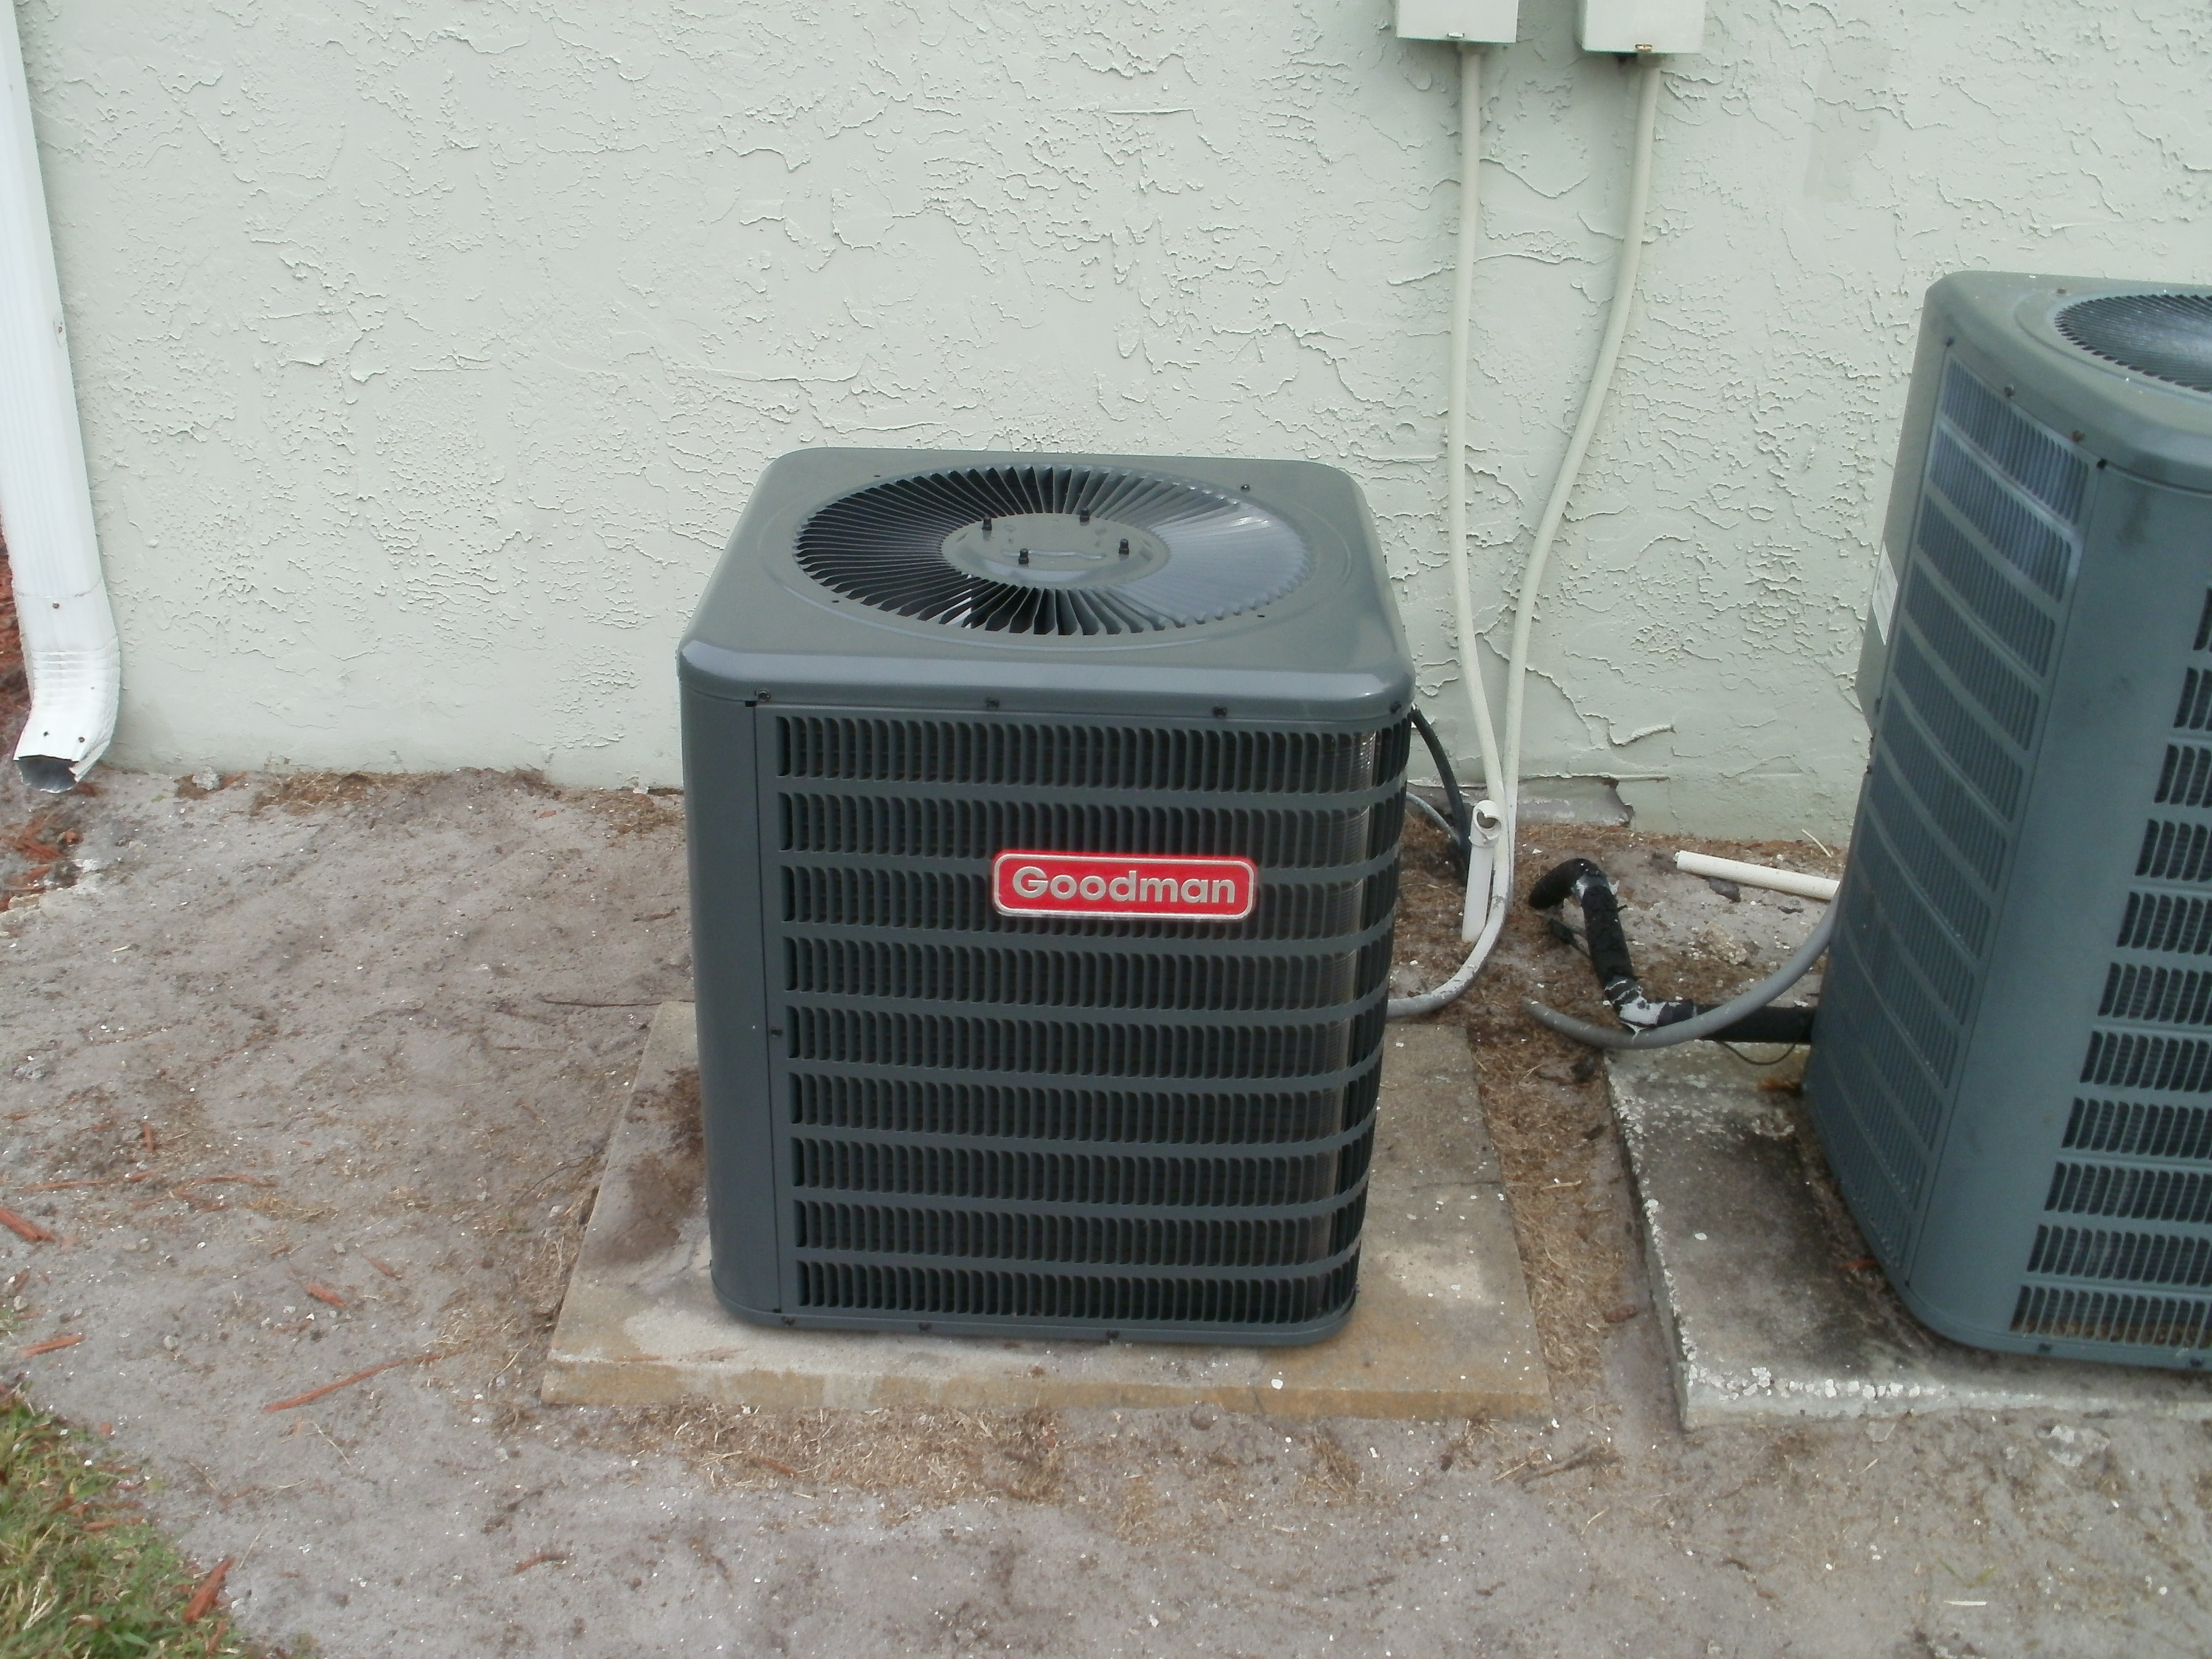 #604D41 #1 Air Source LLC In Melbourne FL (321) 242 2  Most Effective 8965 Air Conditioning Installation Melbourne pictures with 4288x3216 px on helpvideos.info - Air Conditioners, Air Coolers and more